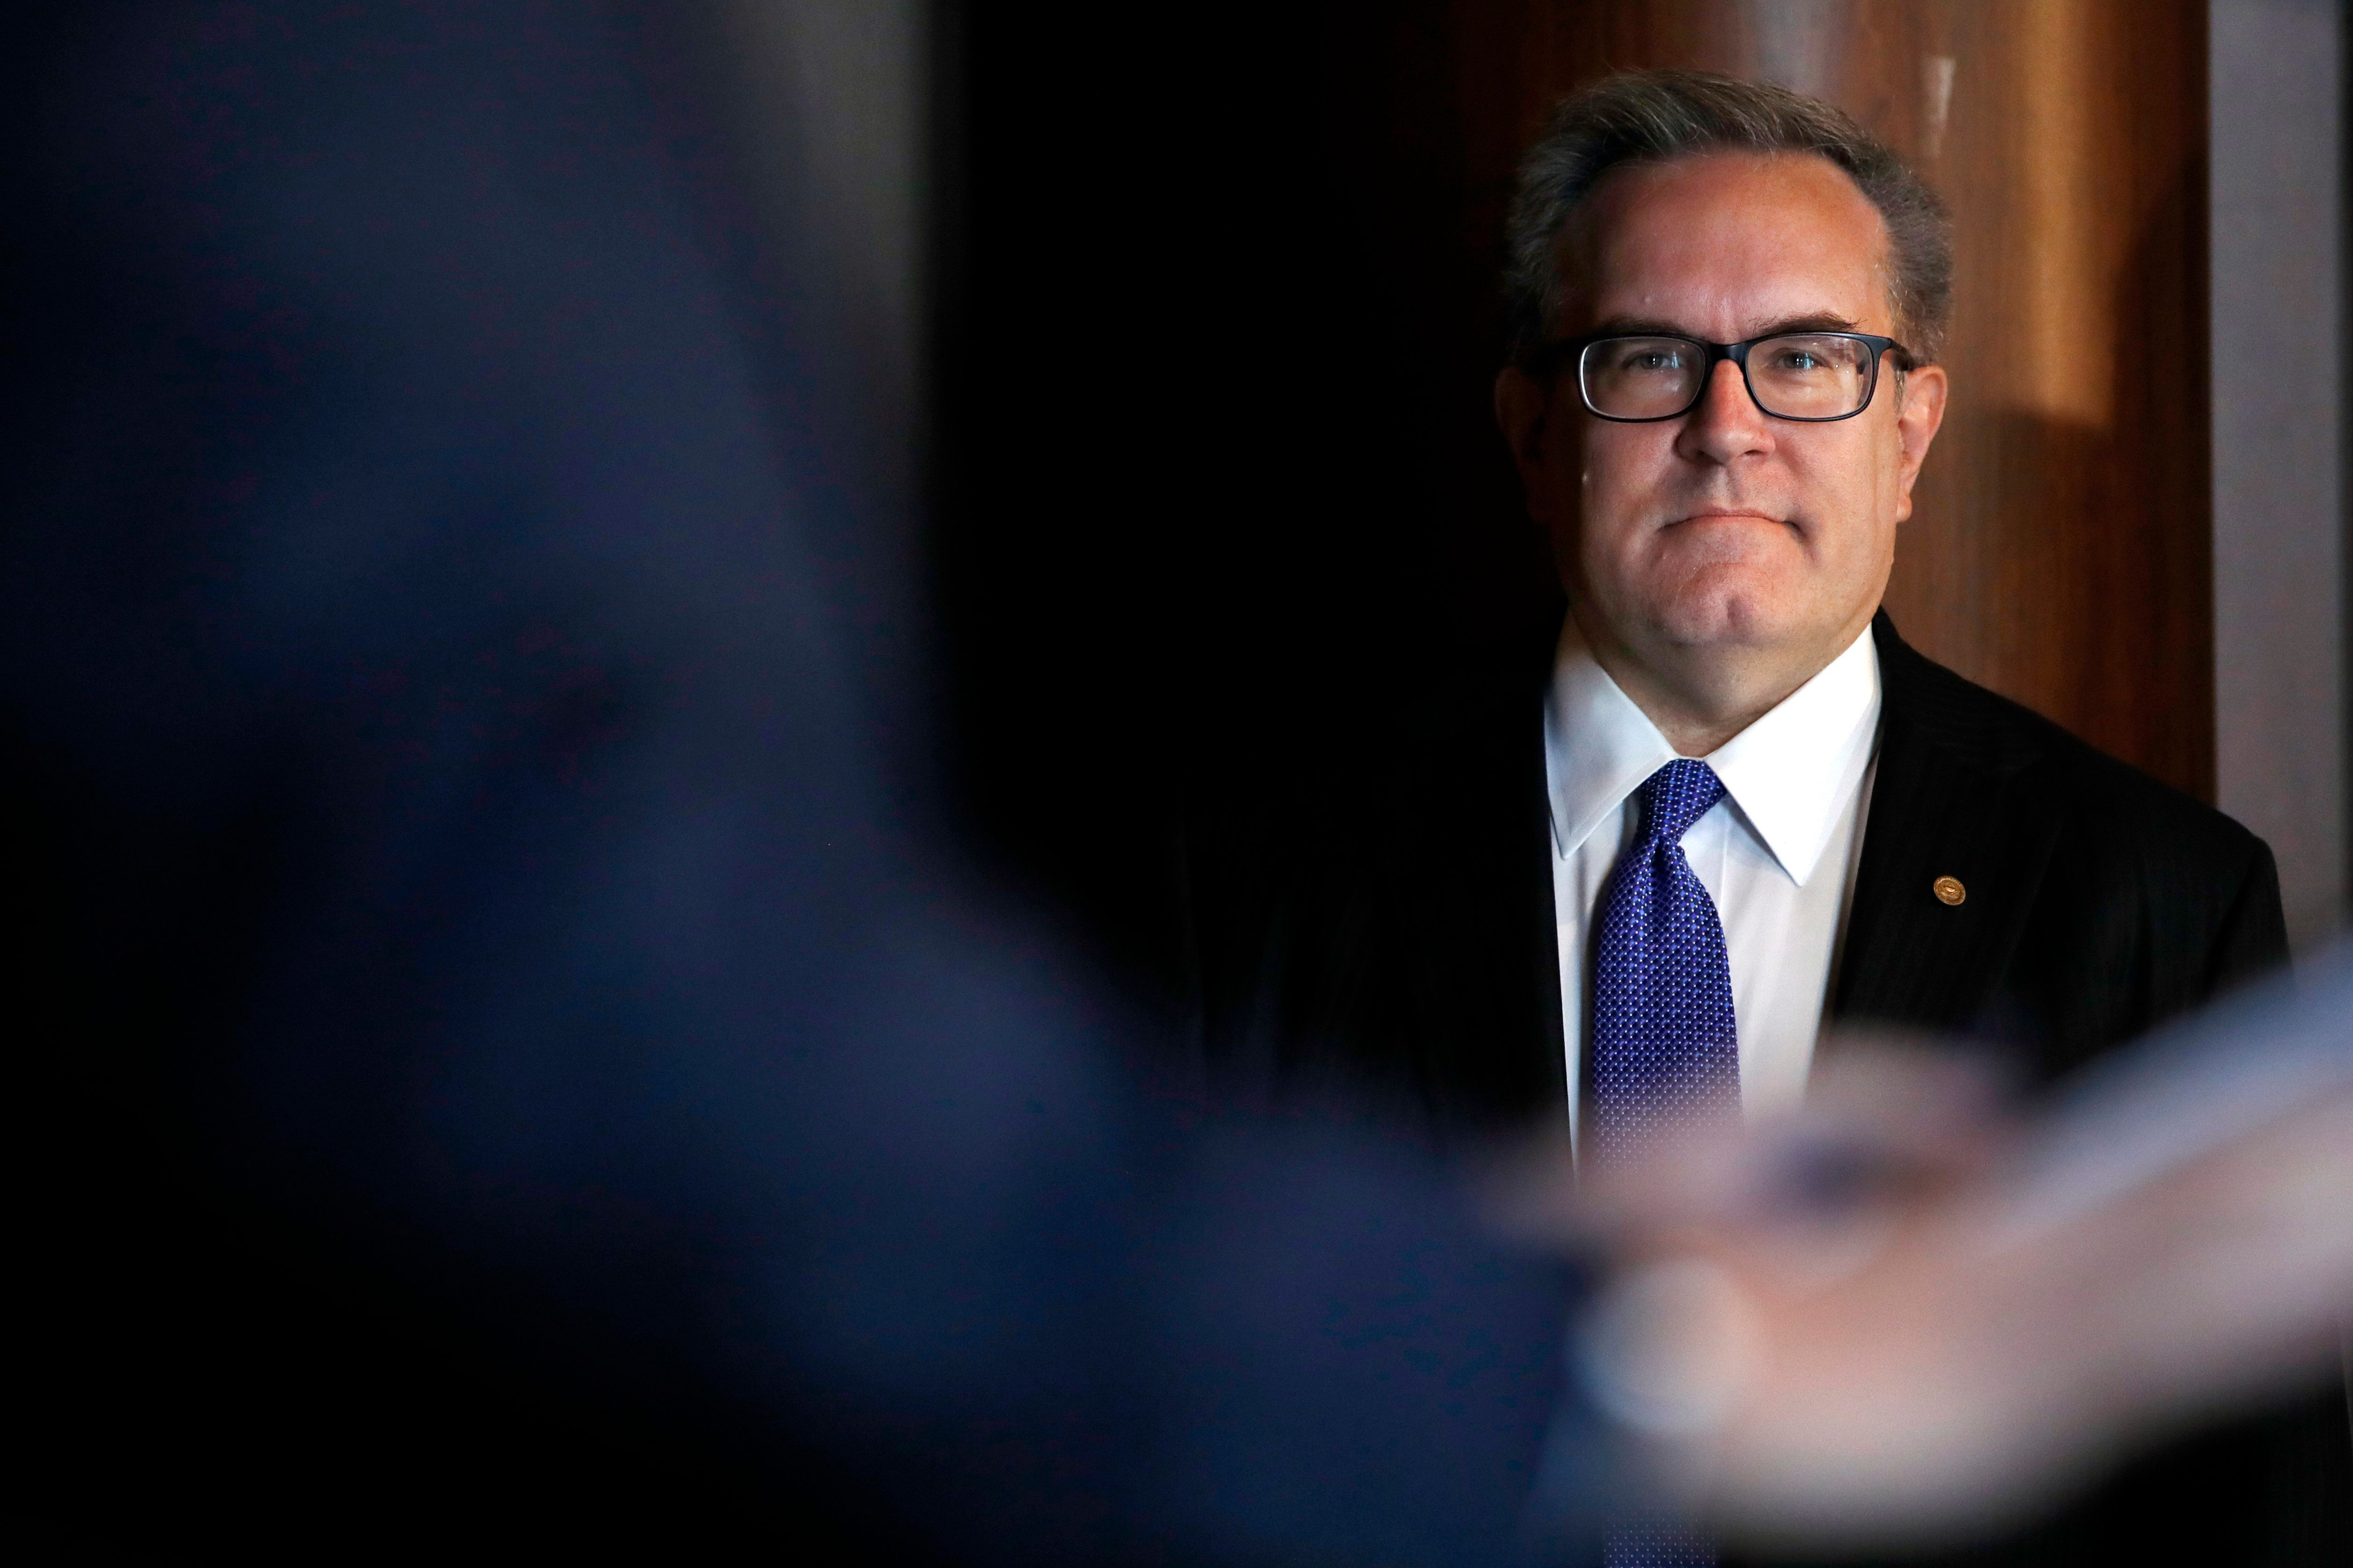 Environmental Protection Agency (EPA) Acting Administrator Andrew Wheeler listens as he is introduced to speak to EPA staff, Wednesday, July 11, 2018, at EPA Headquarters in Washington. (AP Photo/Jacquelyn Martin)